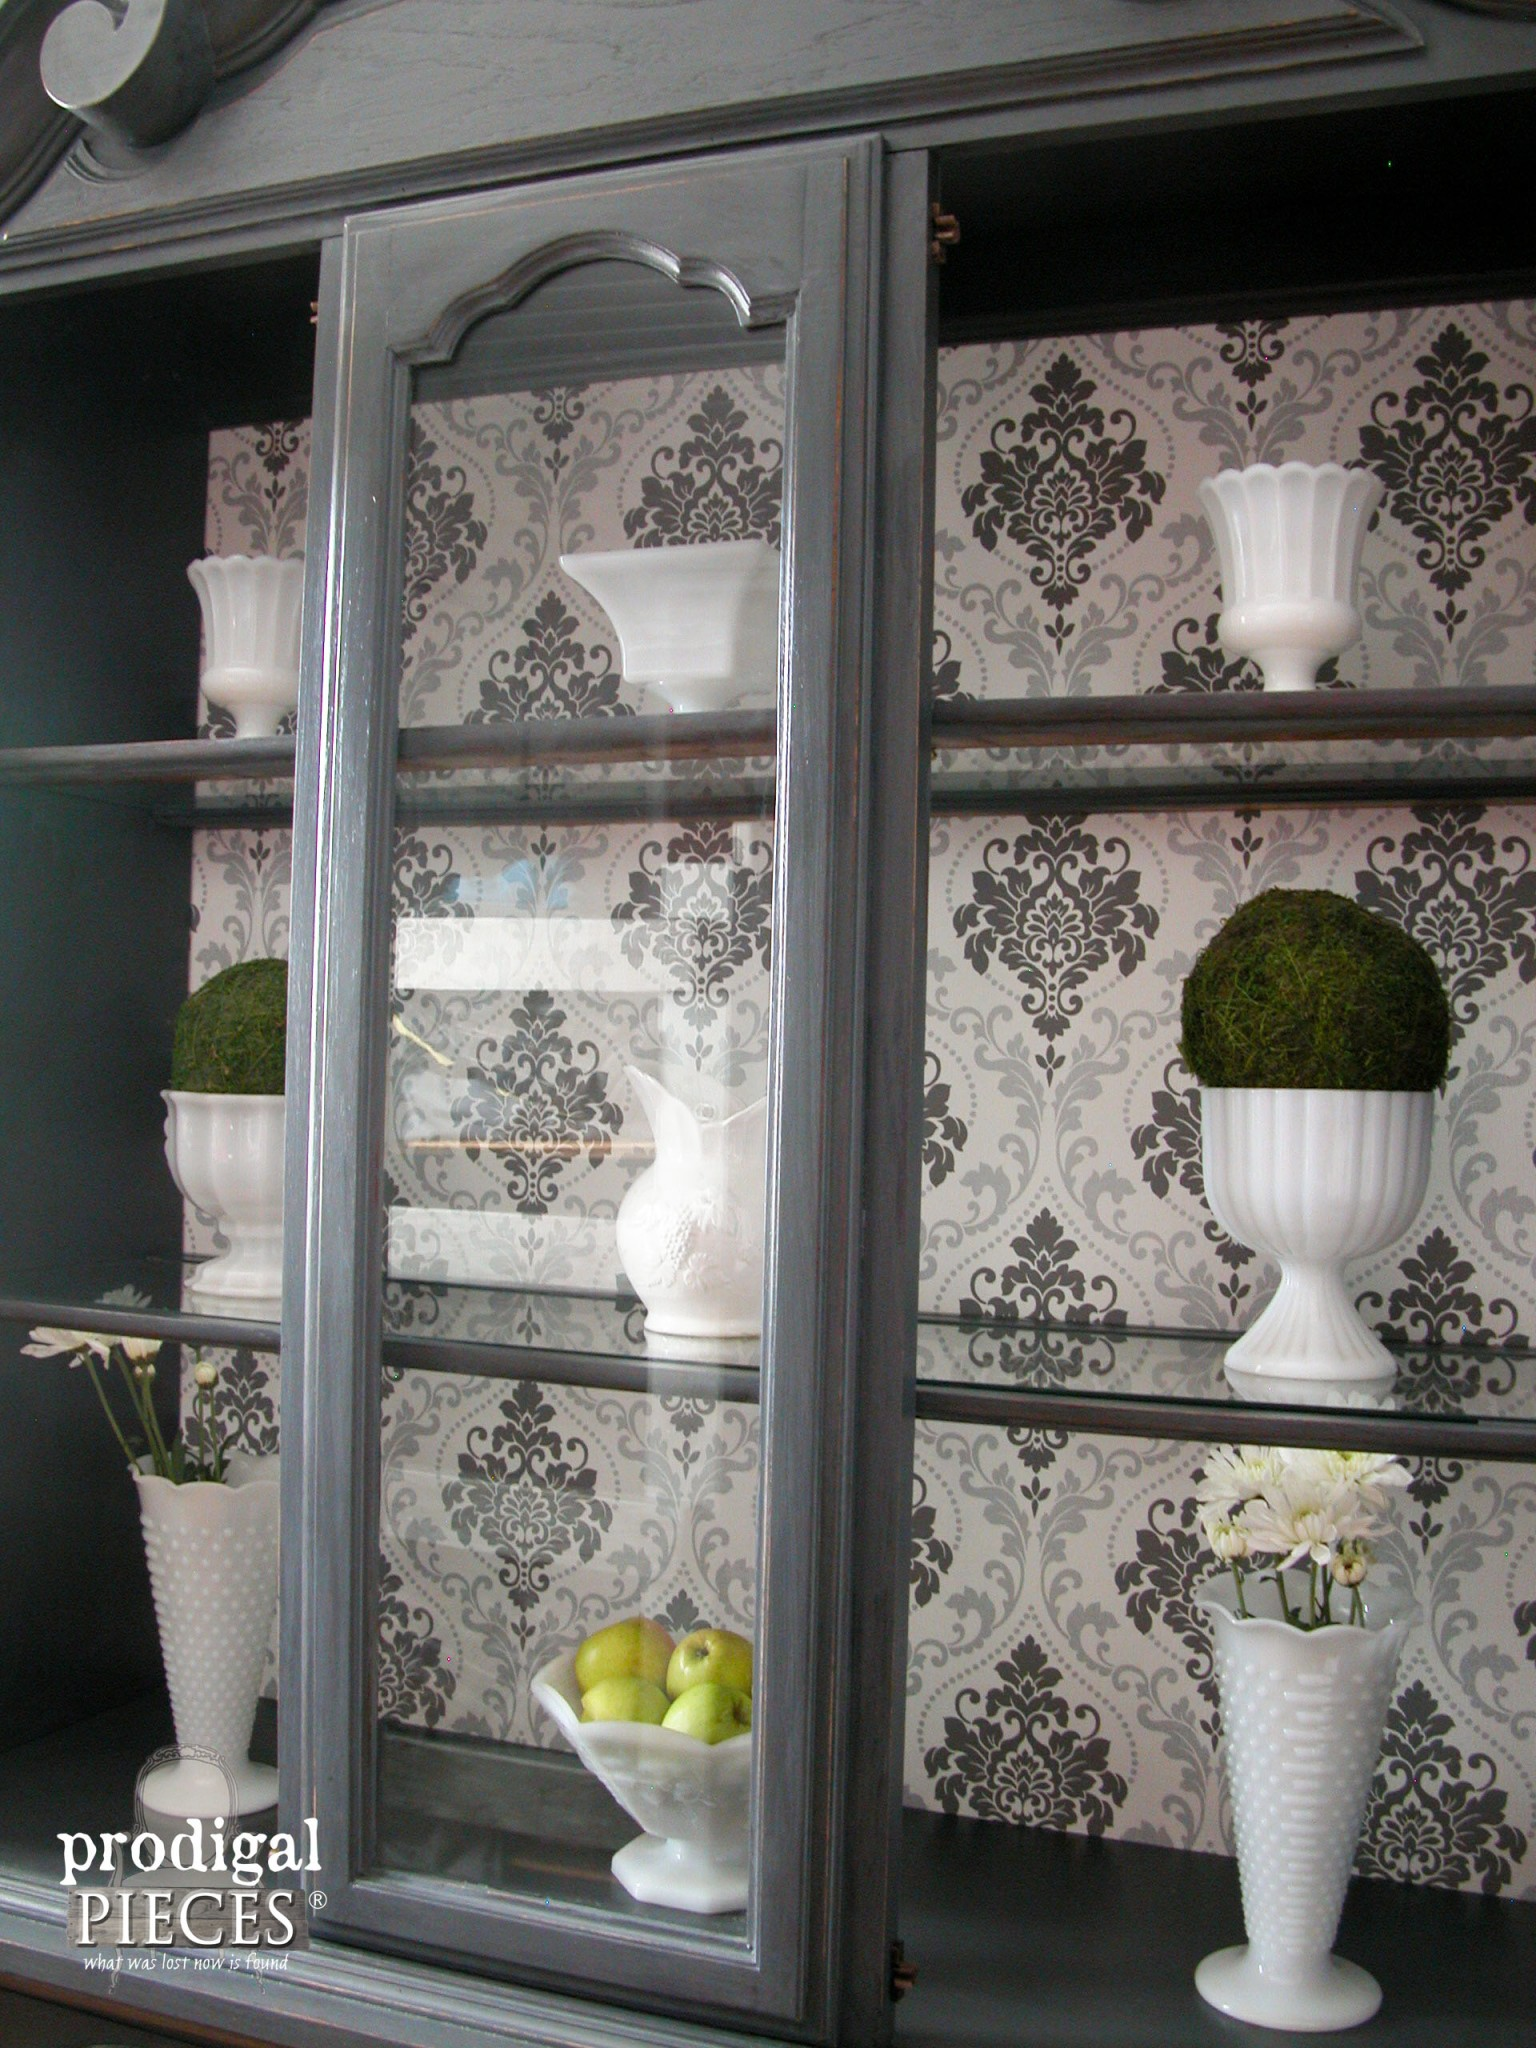 Interior View of Wallpapered China Cabinet by Prodigal Pieces | www.prodigalpieces.com